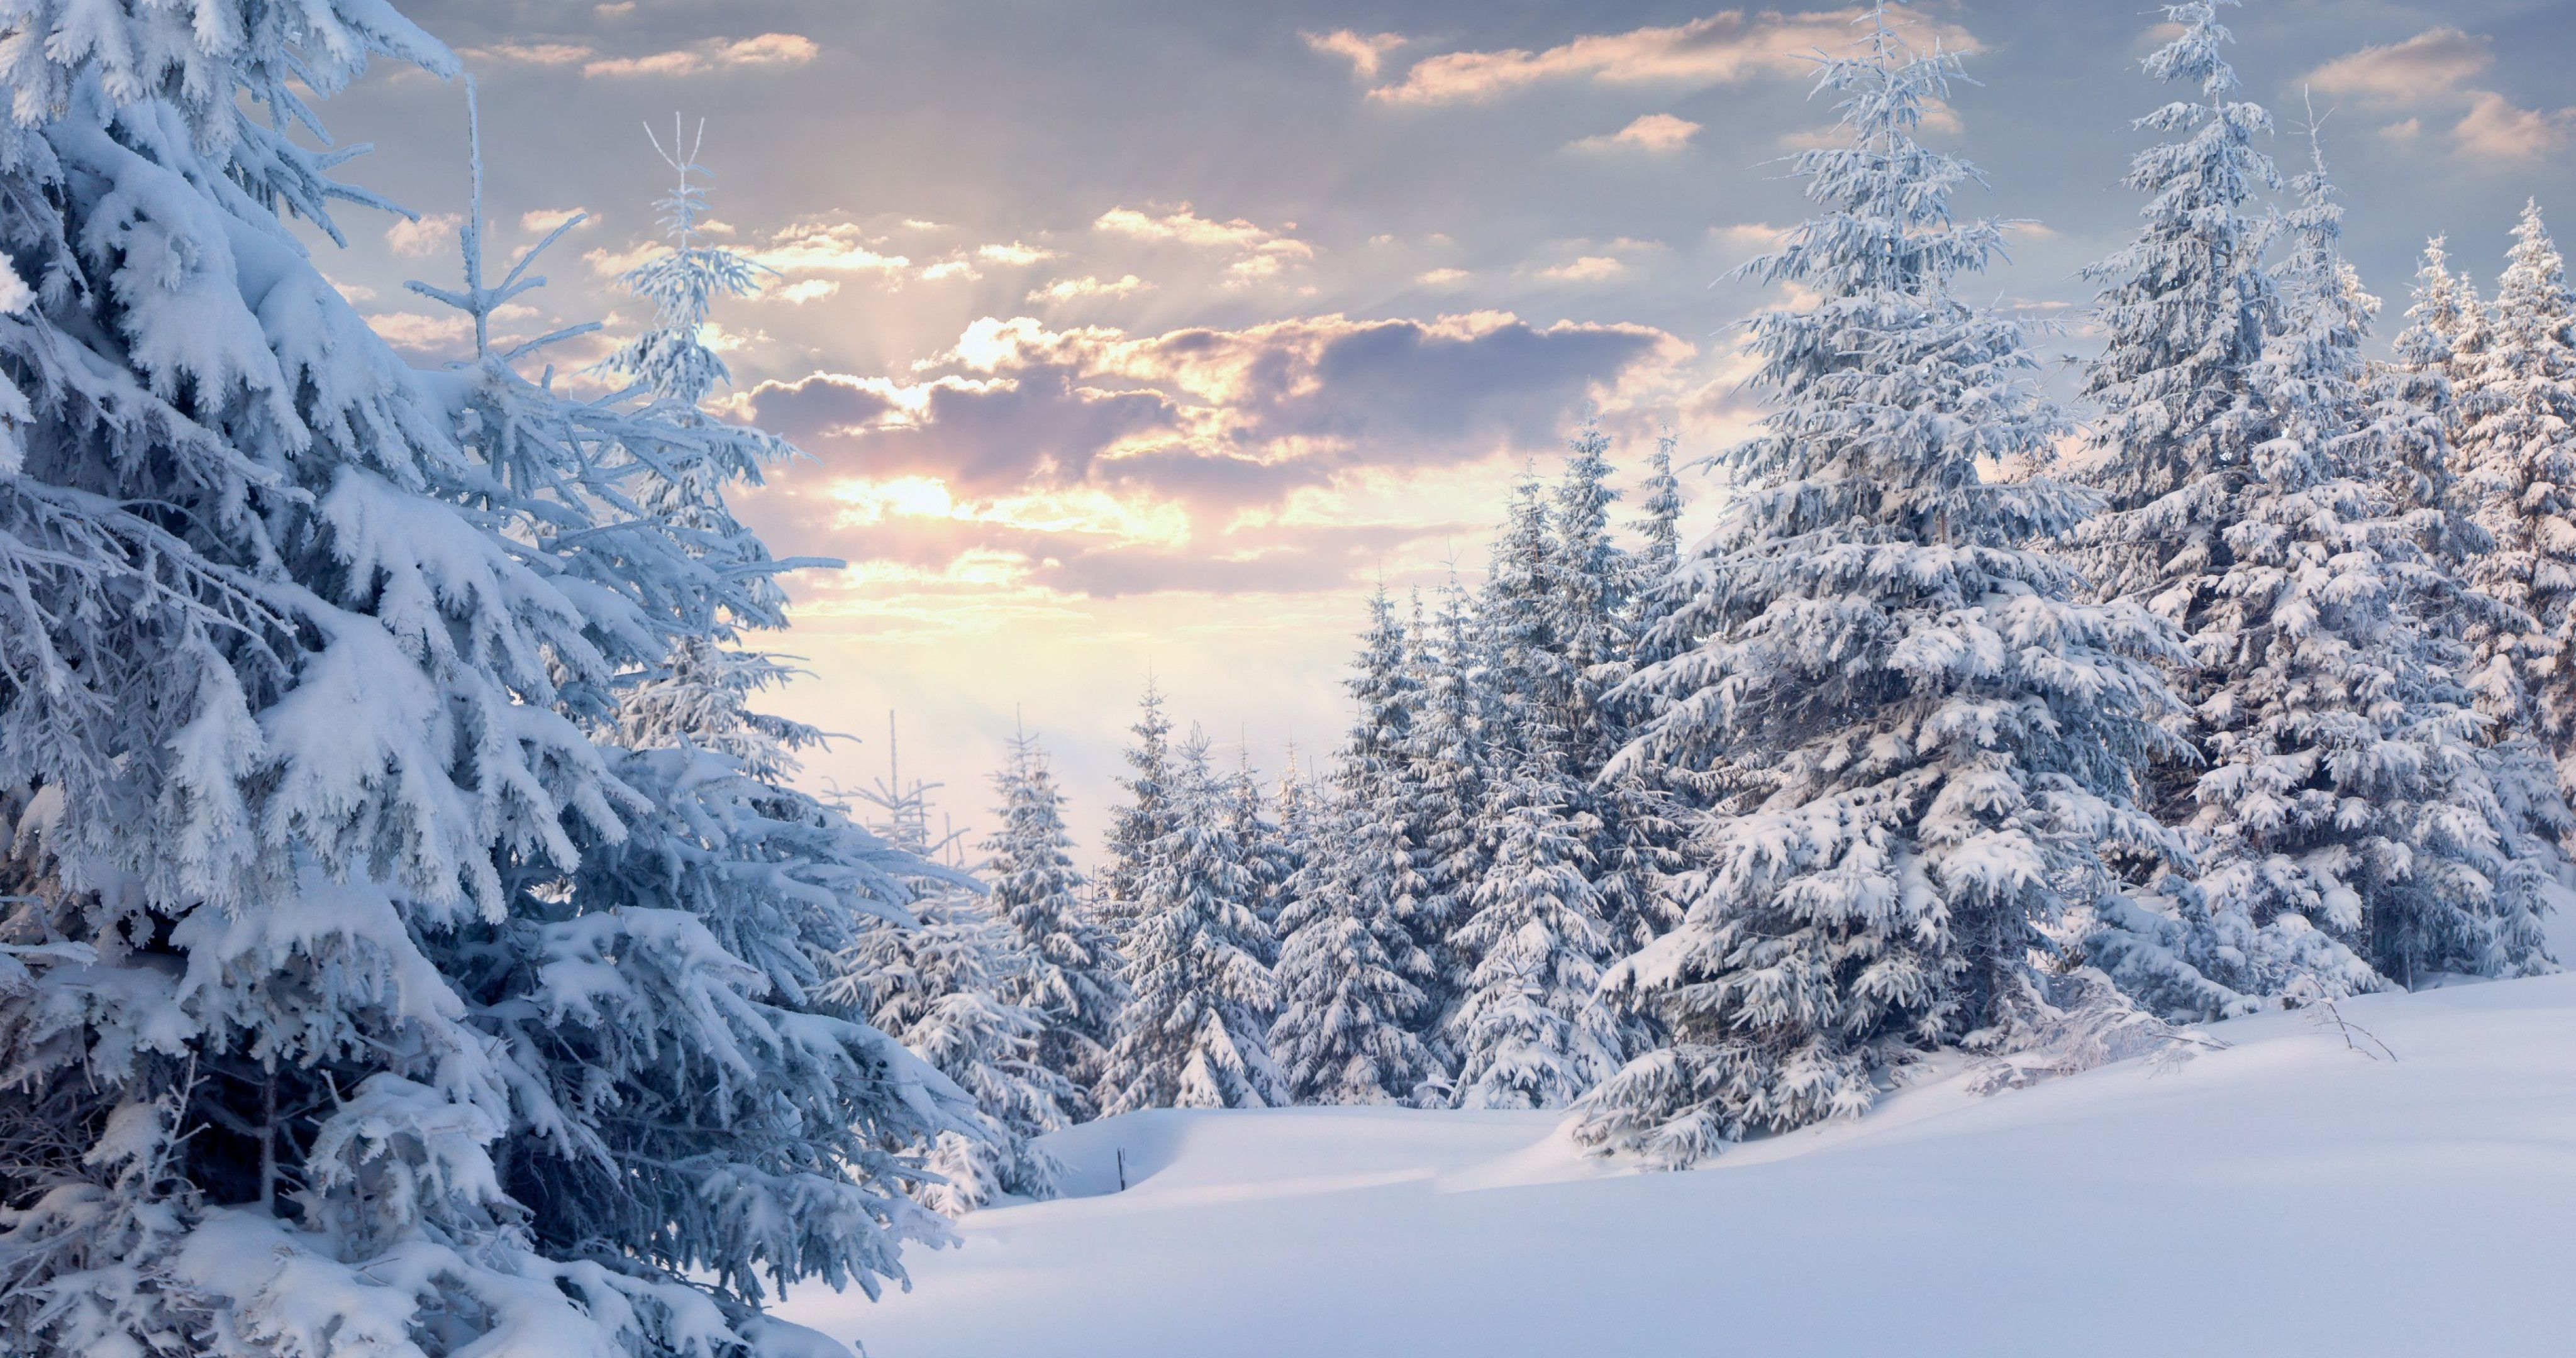 4k Snow Wallpapers Top Free 4k Snow Backgrounds Wallpaperaccess